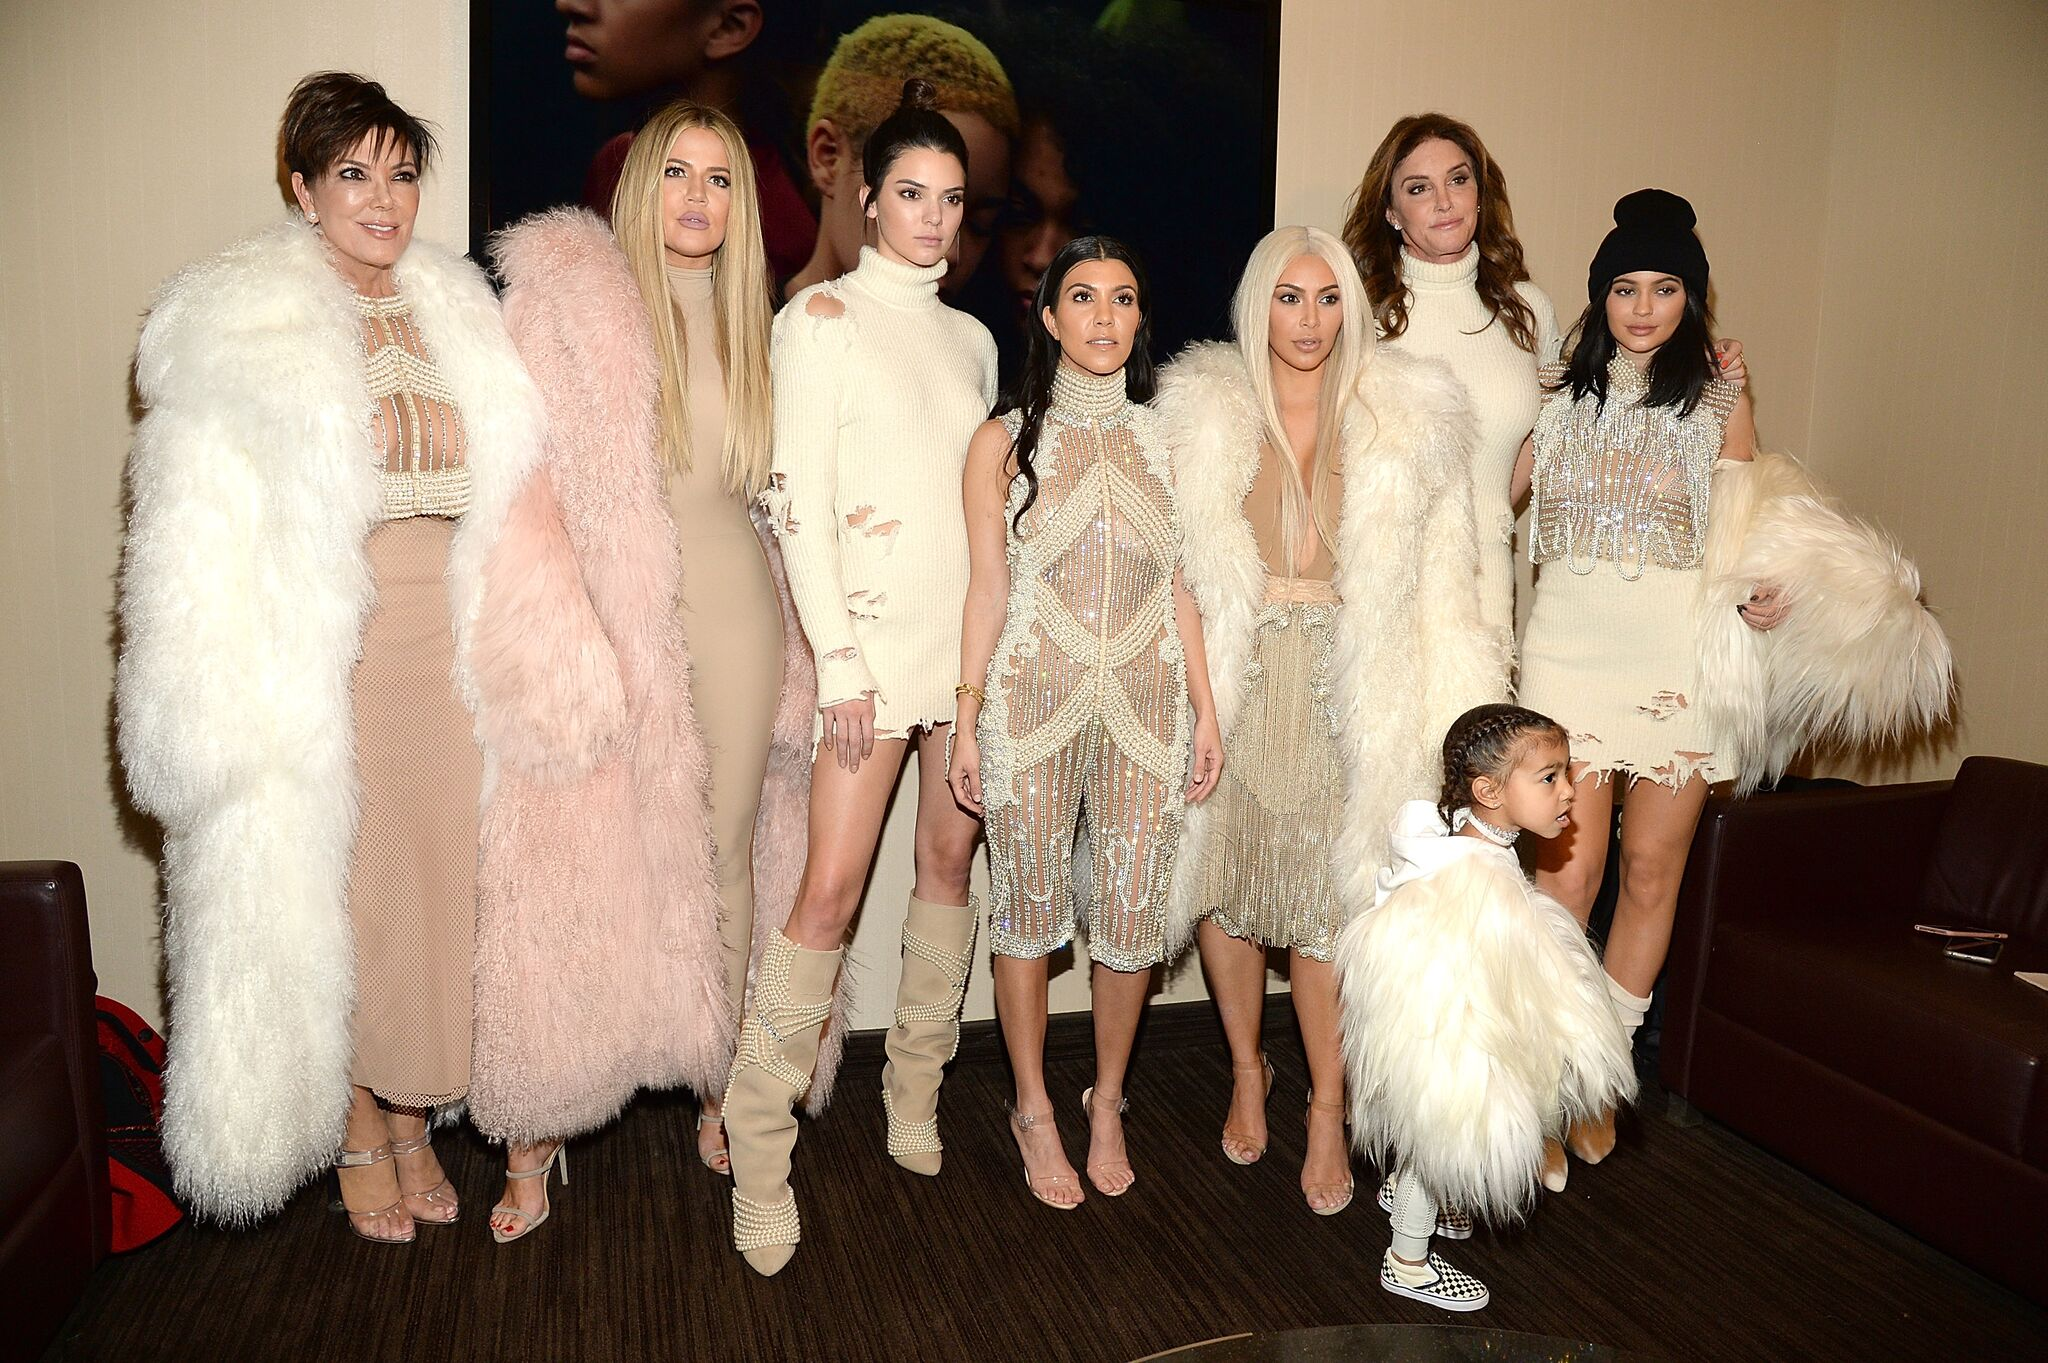 Khloe Kardashian, Kris Jenner, Kendall Jenner, Kourtney Kardashian, Kim Kardashian West, North West, Caitlyn Jenner and Kylie Jenner attend Kanye West Yeezy Season 3 at Madison Square Garden | Getty Images